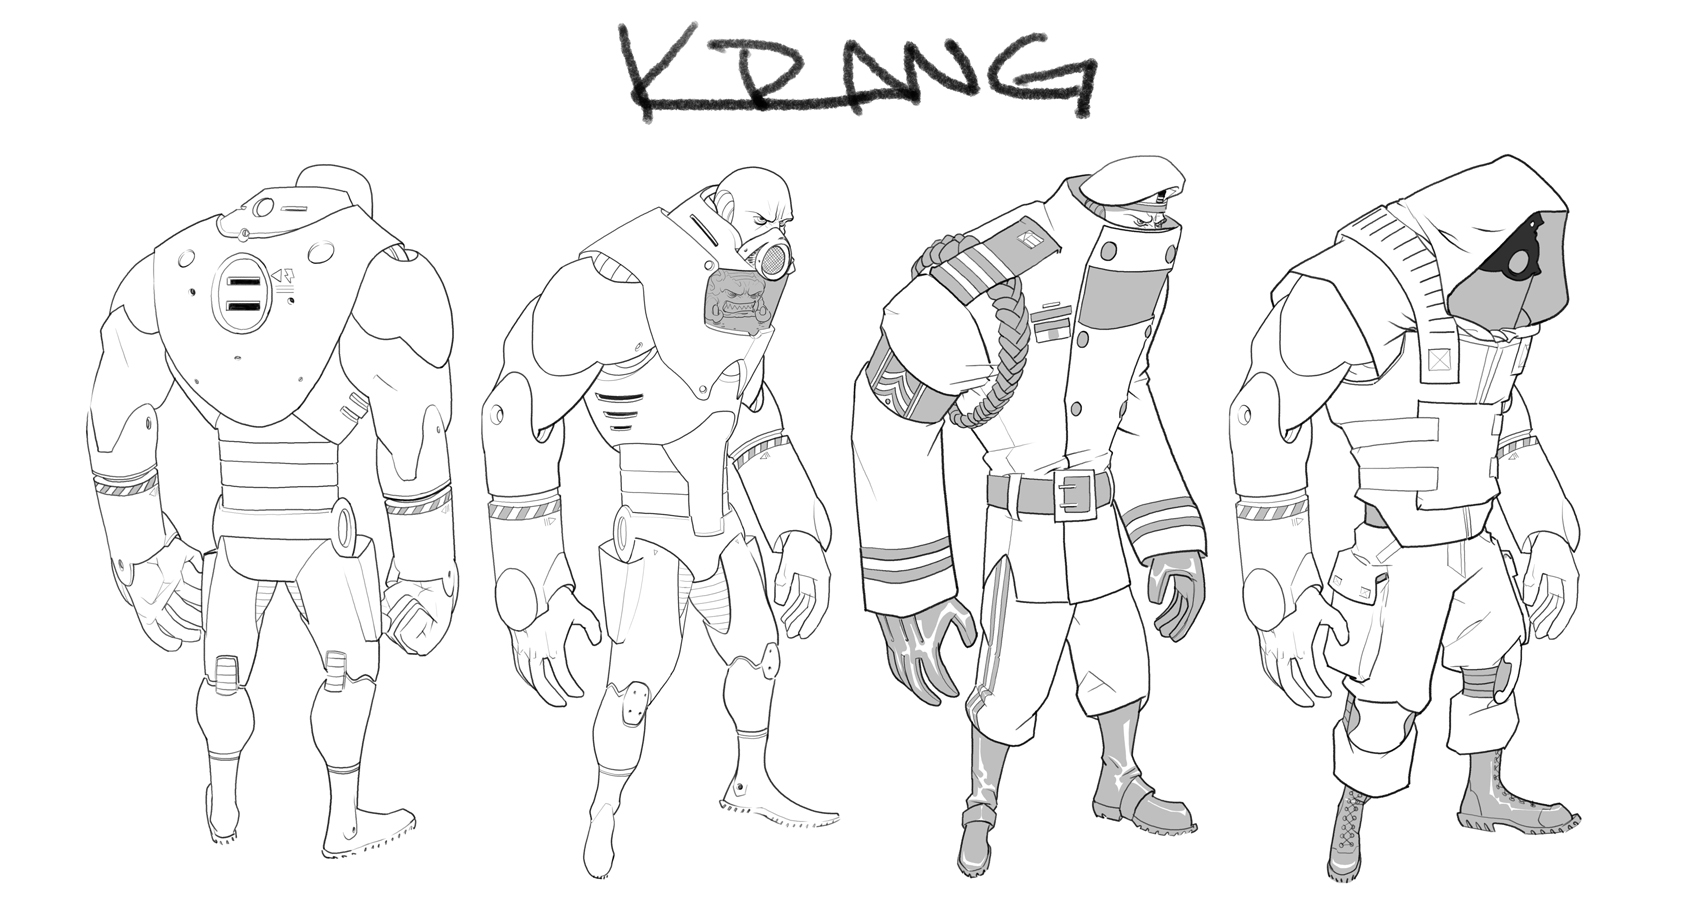 kraang coloring pages - photo#29